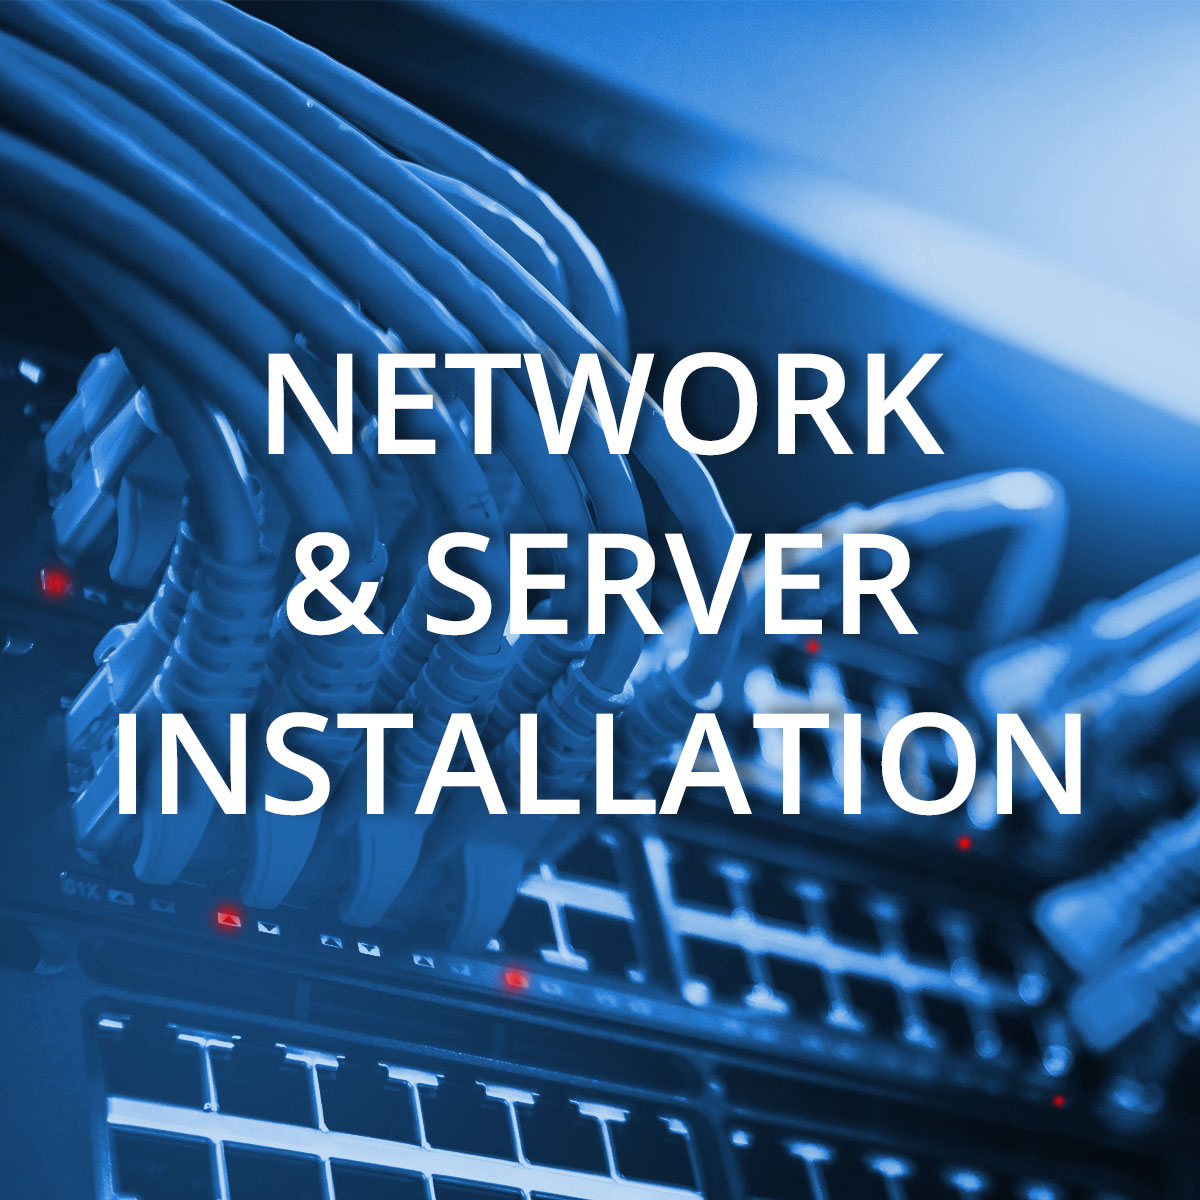 Interpro Technology IT Support - Network and Server Installations - Portsmouth, Southampton, Fareham, Hampshire